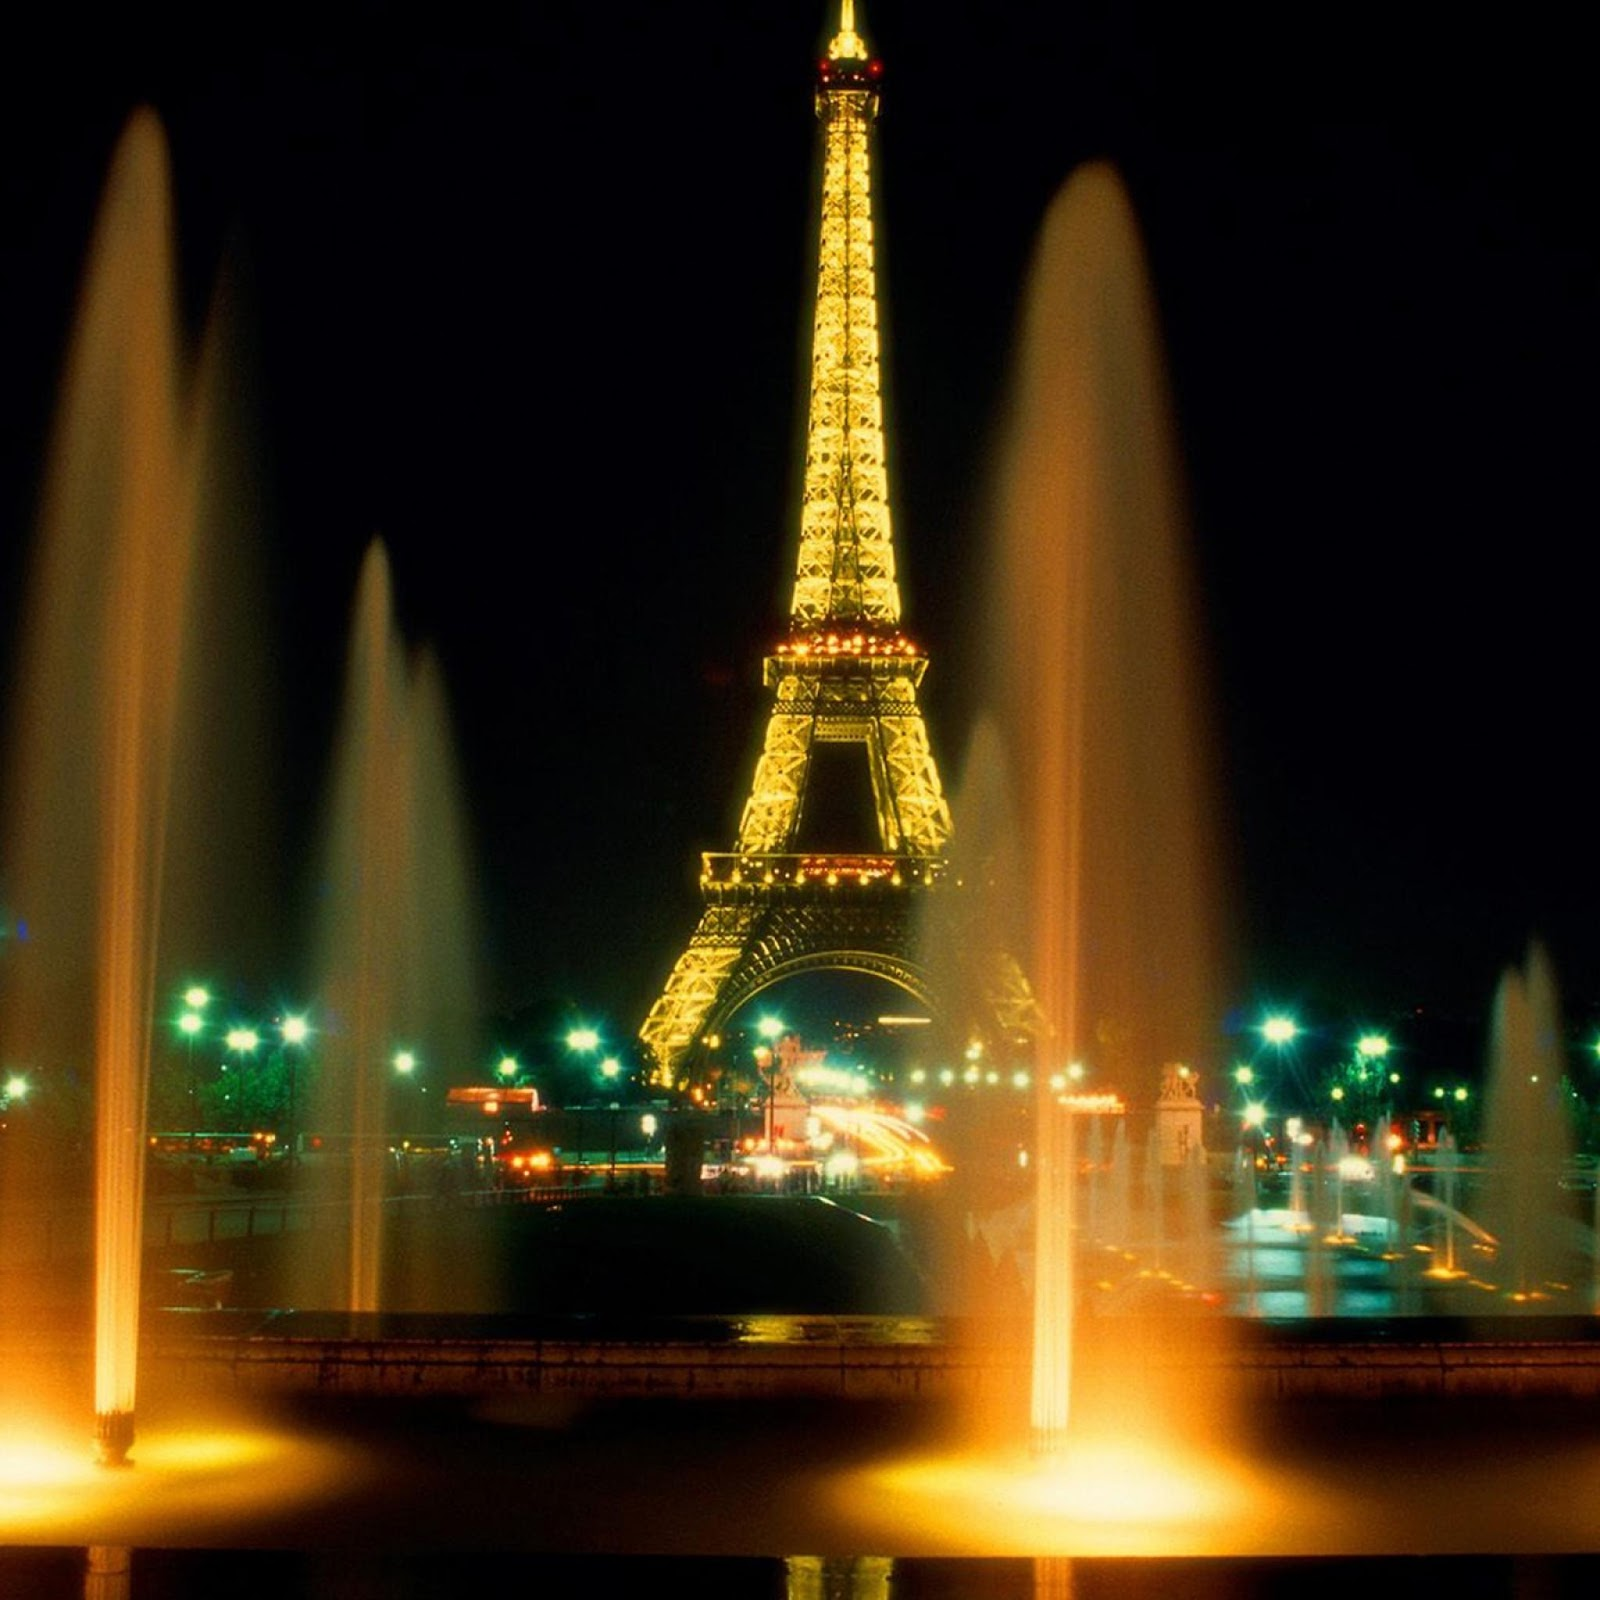 eiffel tower - photo #16